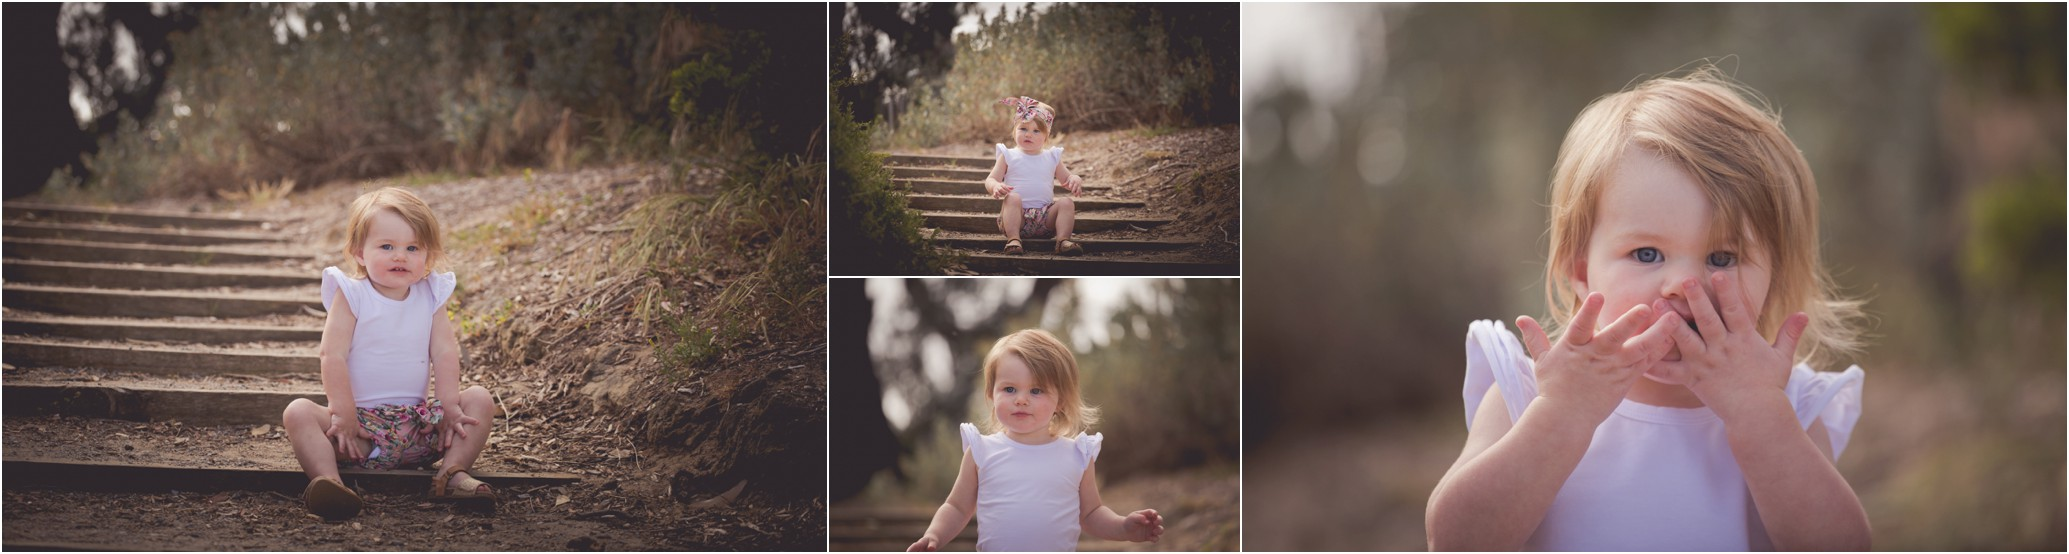 Family Photography Geelong_0752